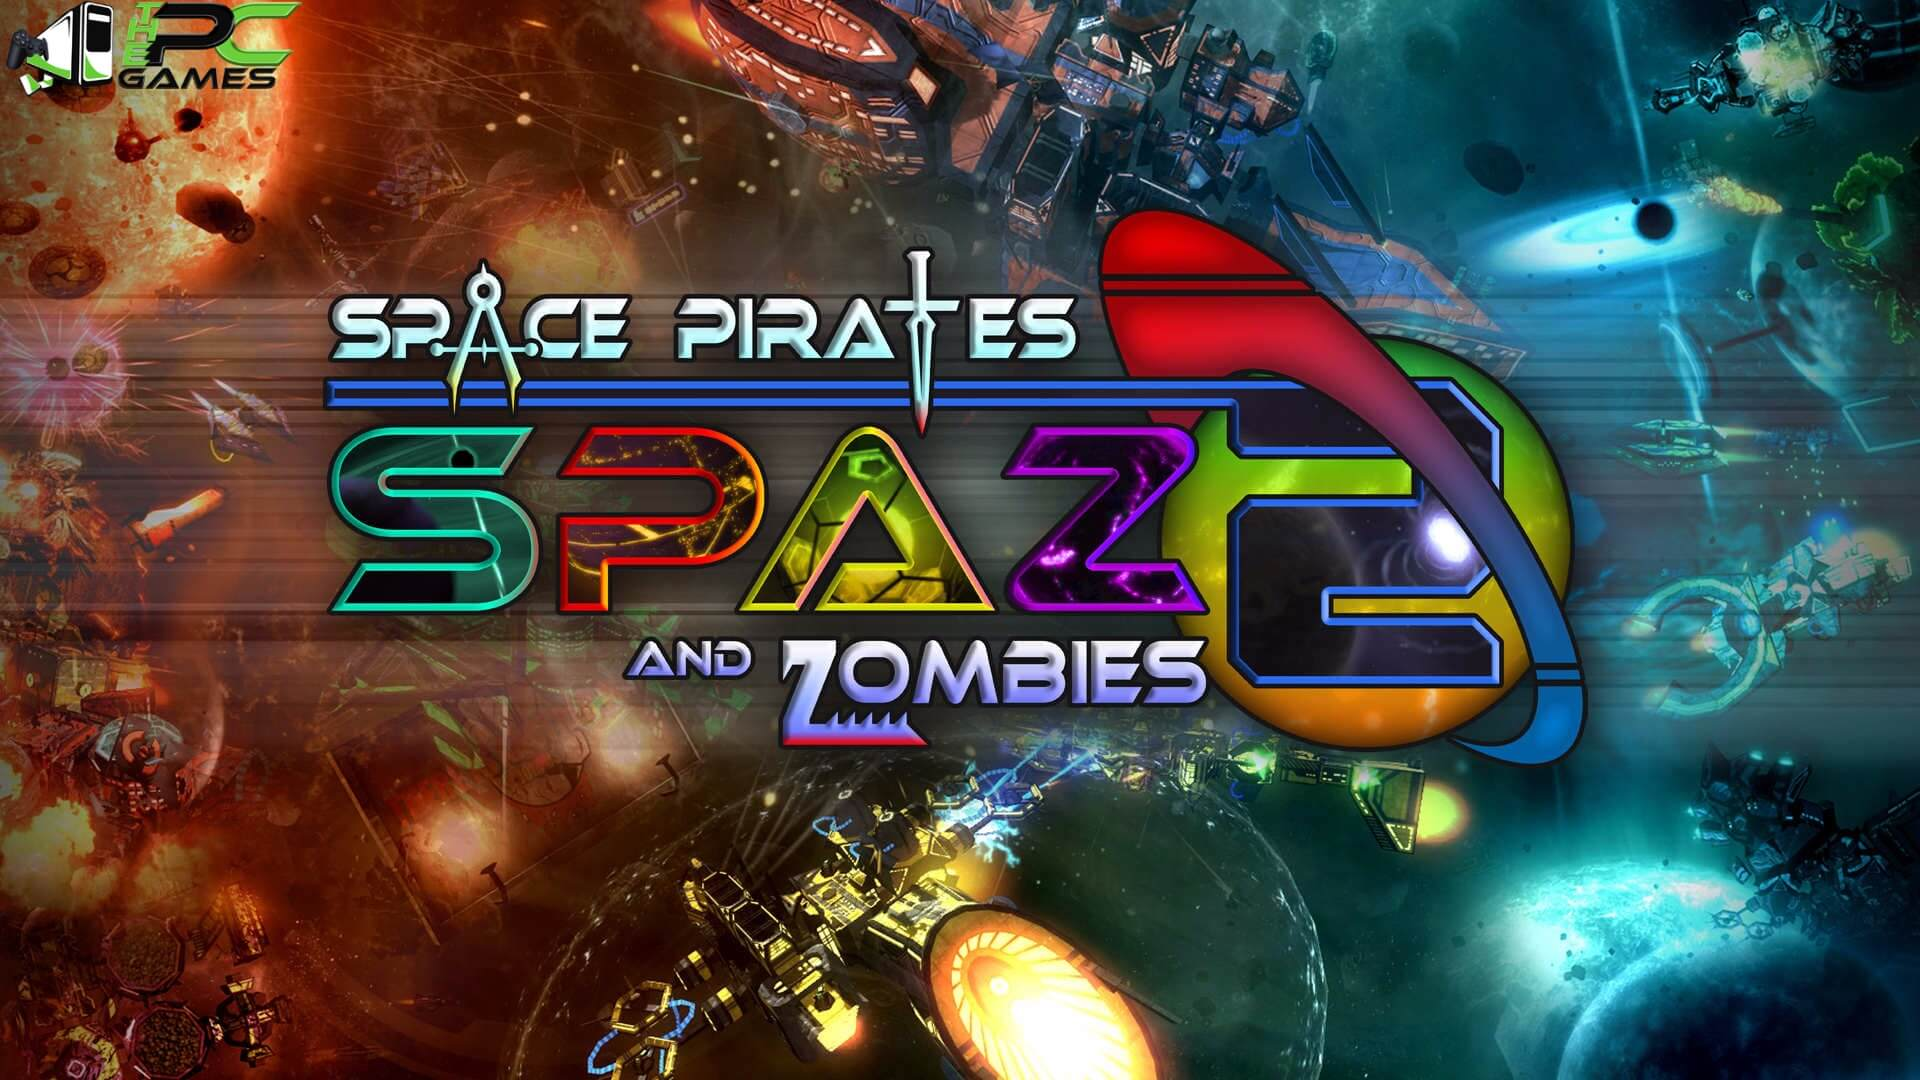 Space Pirates And Zombies 2 Free Download From thepcgames.net